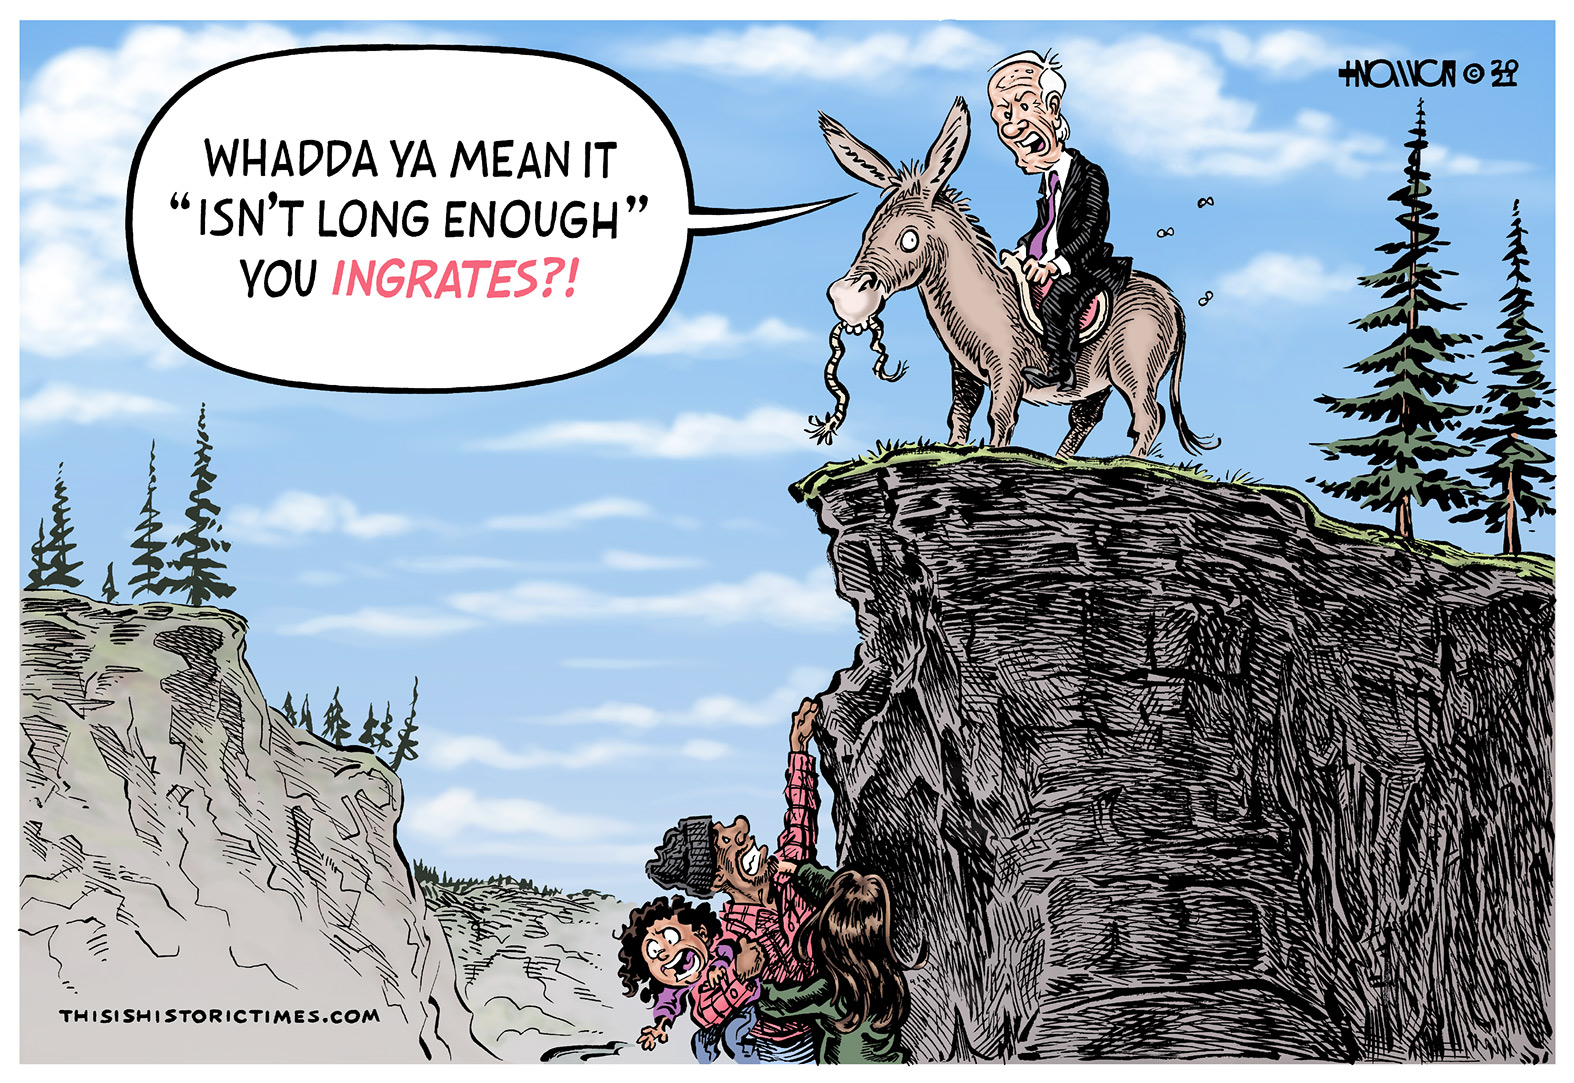 A family is need of help after falling off a cliff, but the rope Joe Biden brought is far too short for them to reach it.